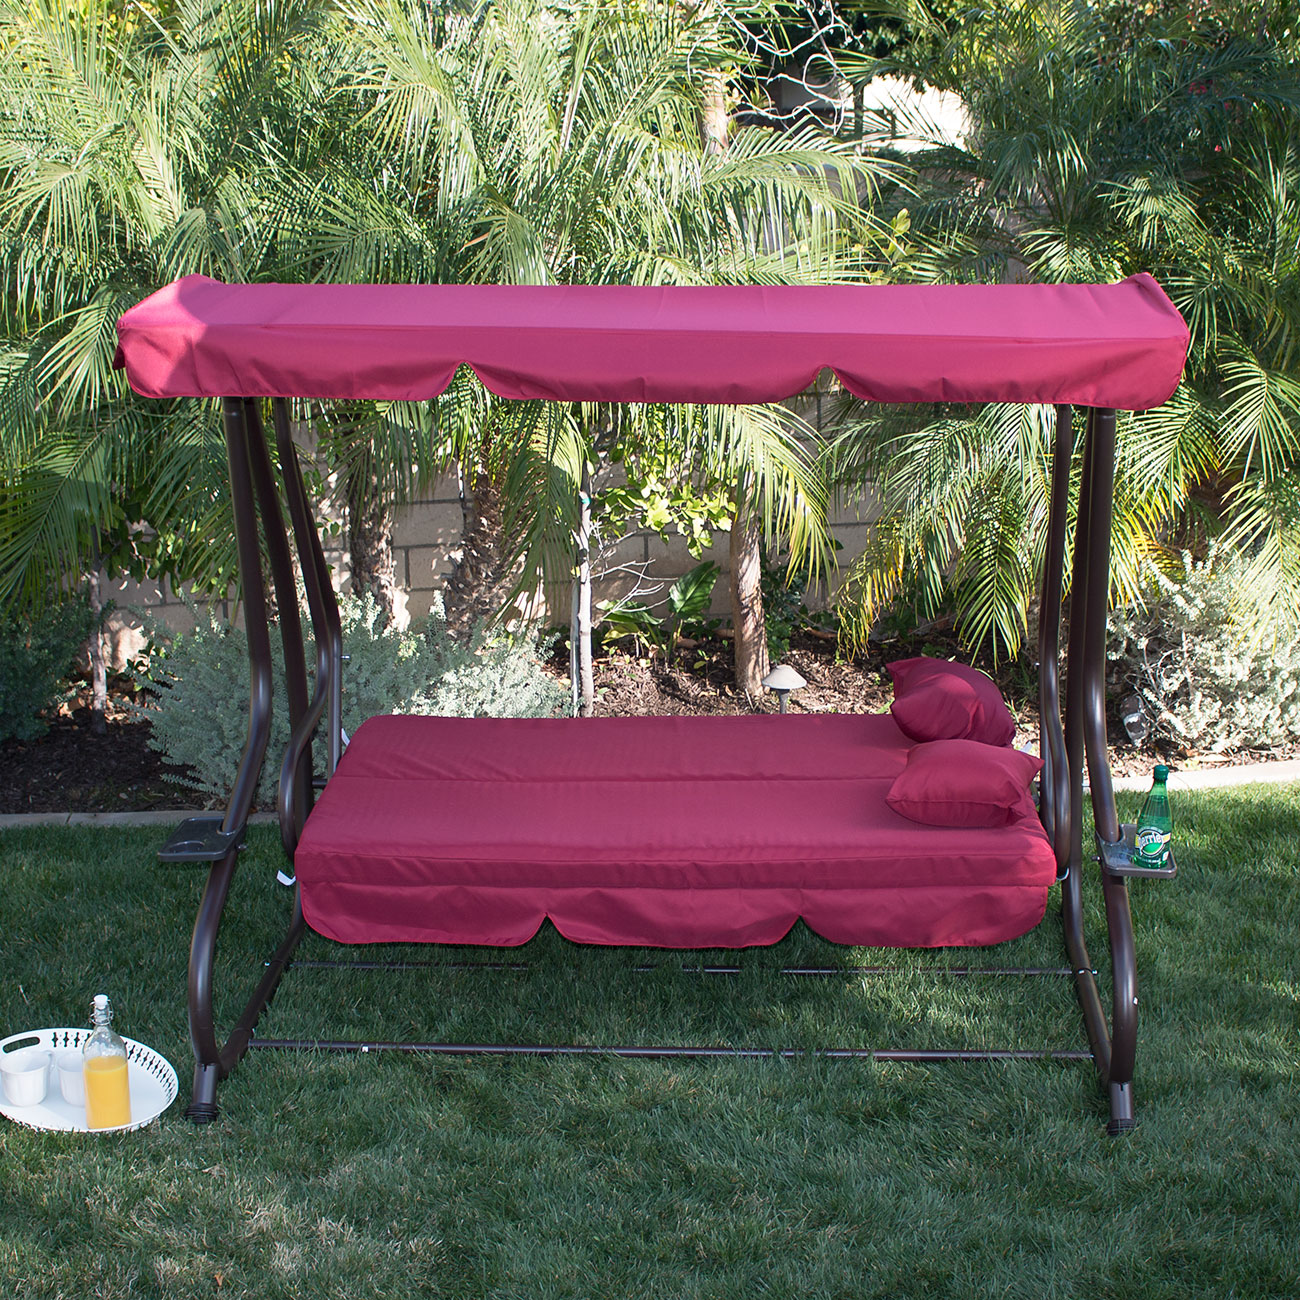 outdoor burgundy canopy swing bed patio deck garden porch seat furniture chair. Black Bedroom Furniture Sets. Home Design Ideas